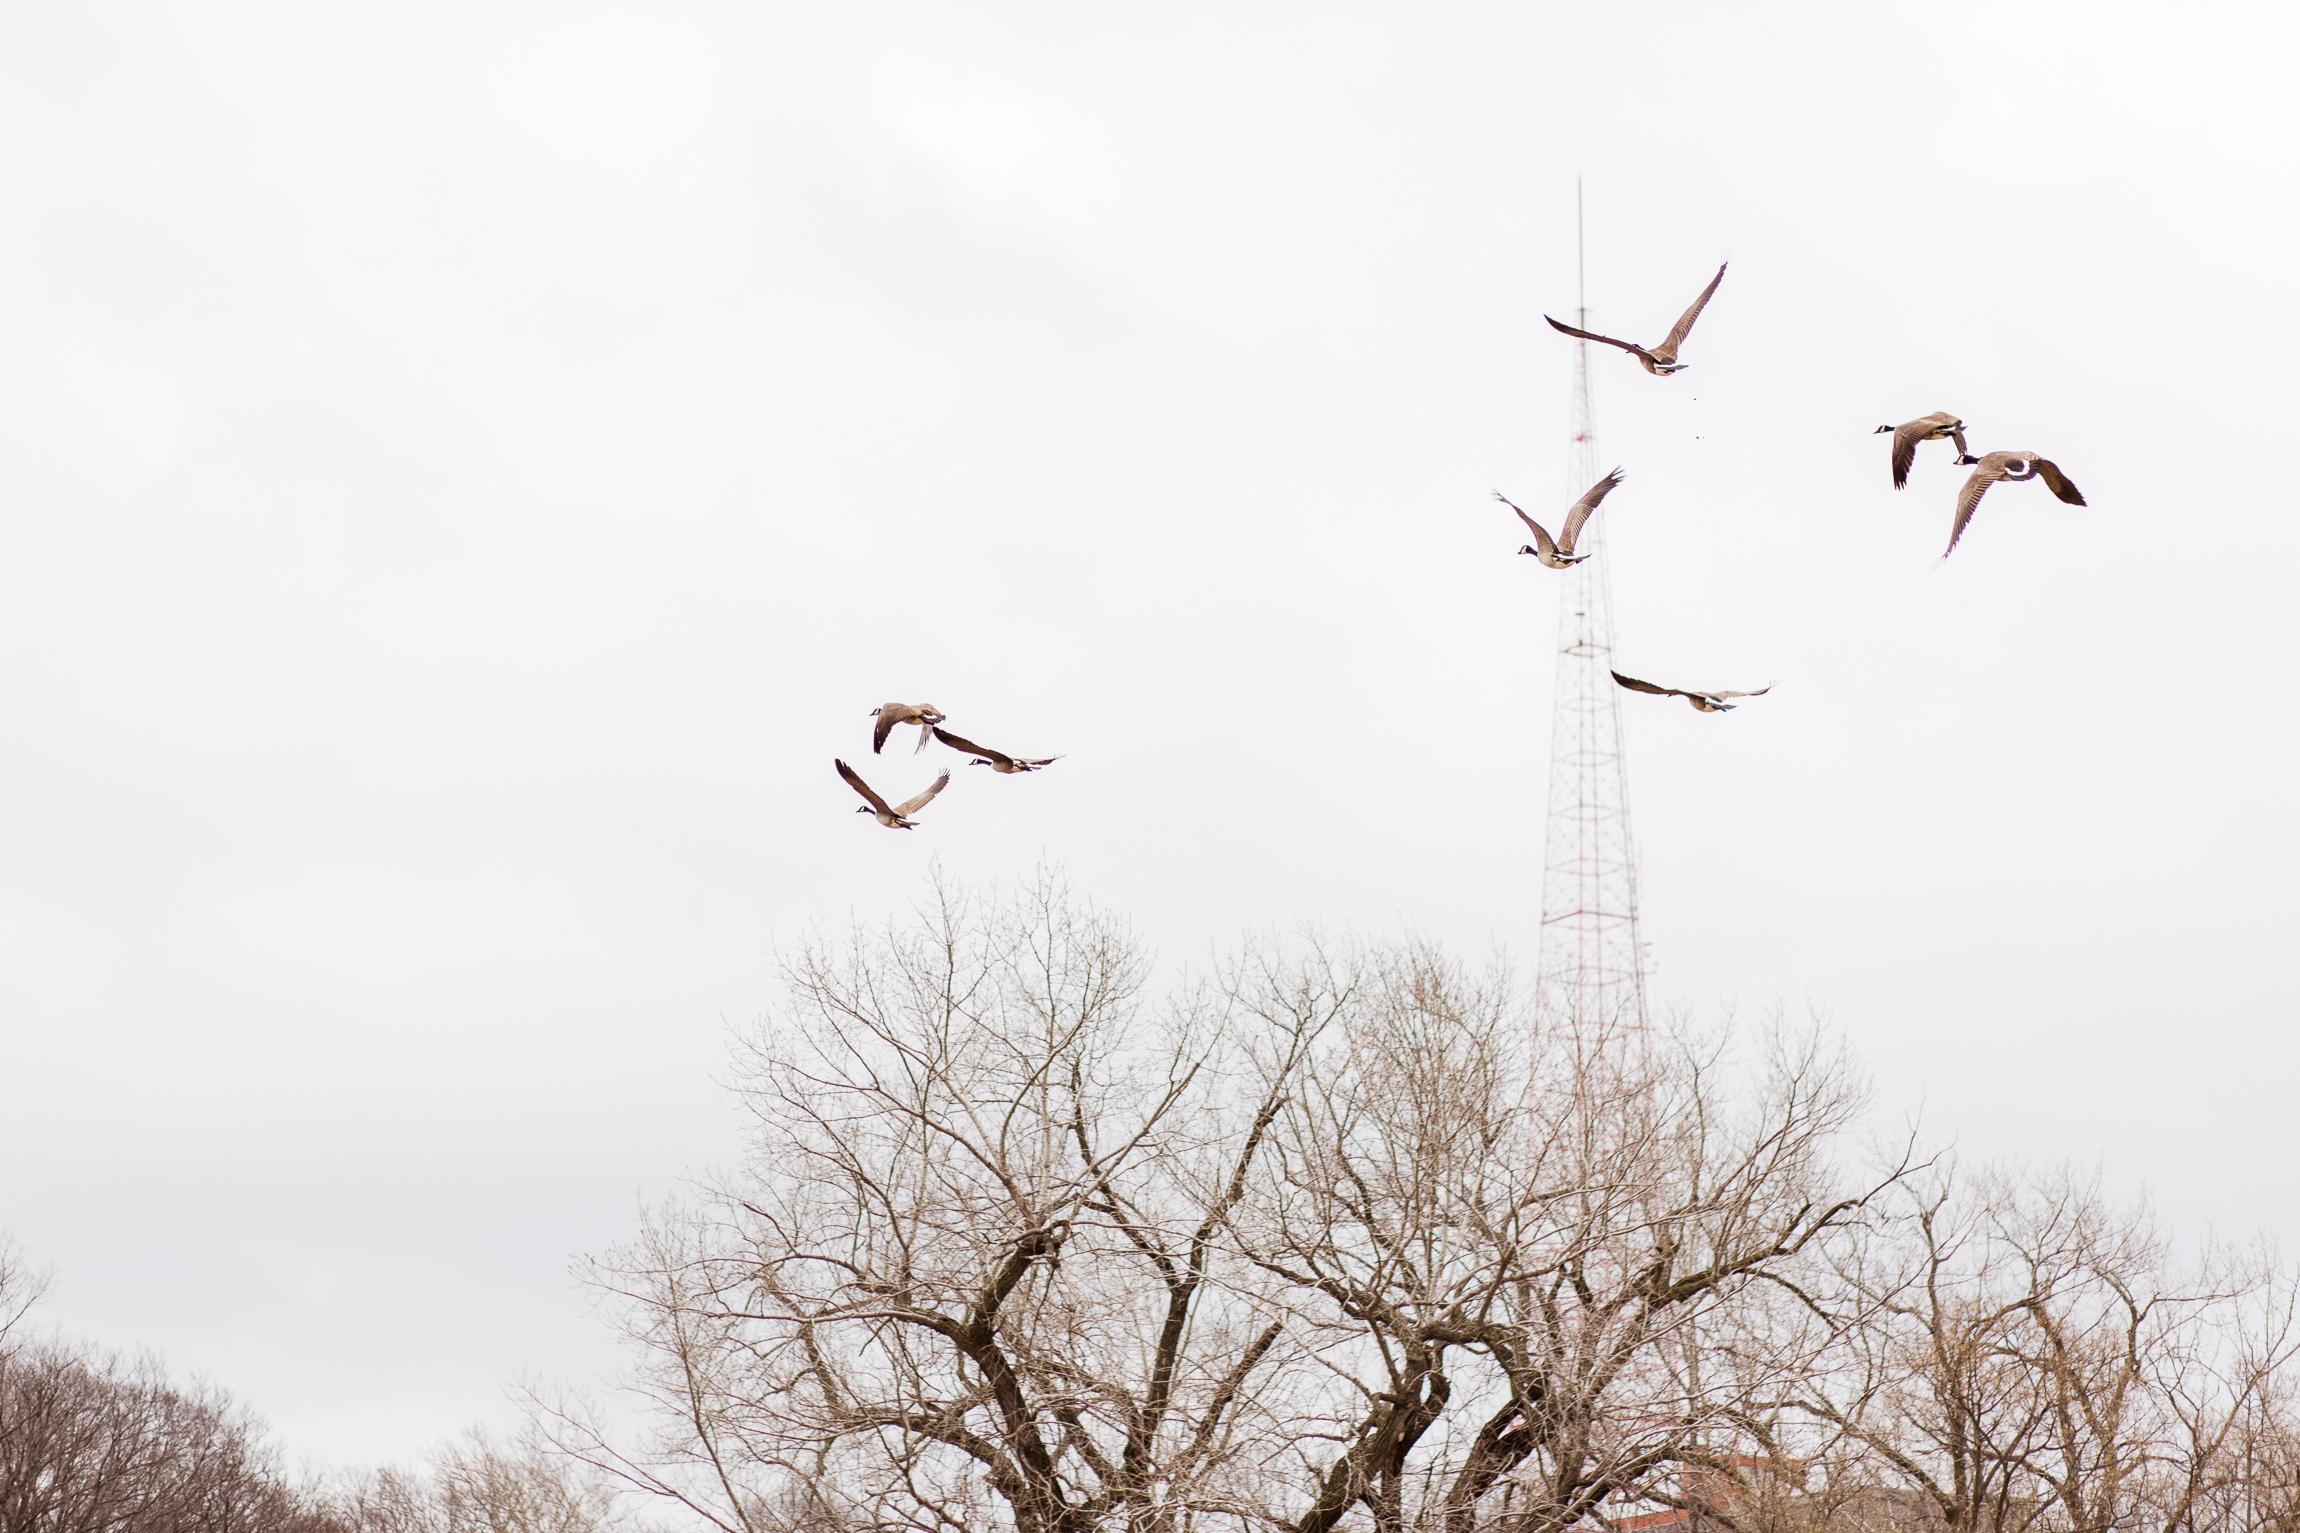 Geese flying over winter trees, Kansas City lifestyle photographer, Kansas City senior photographer, Kansas City small business headshots, Kansas City lifestyle blogger, candid portrait, winter portrait session, Penn Valley Park